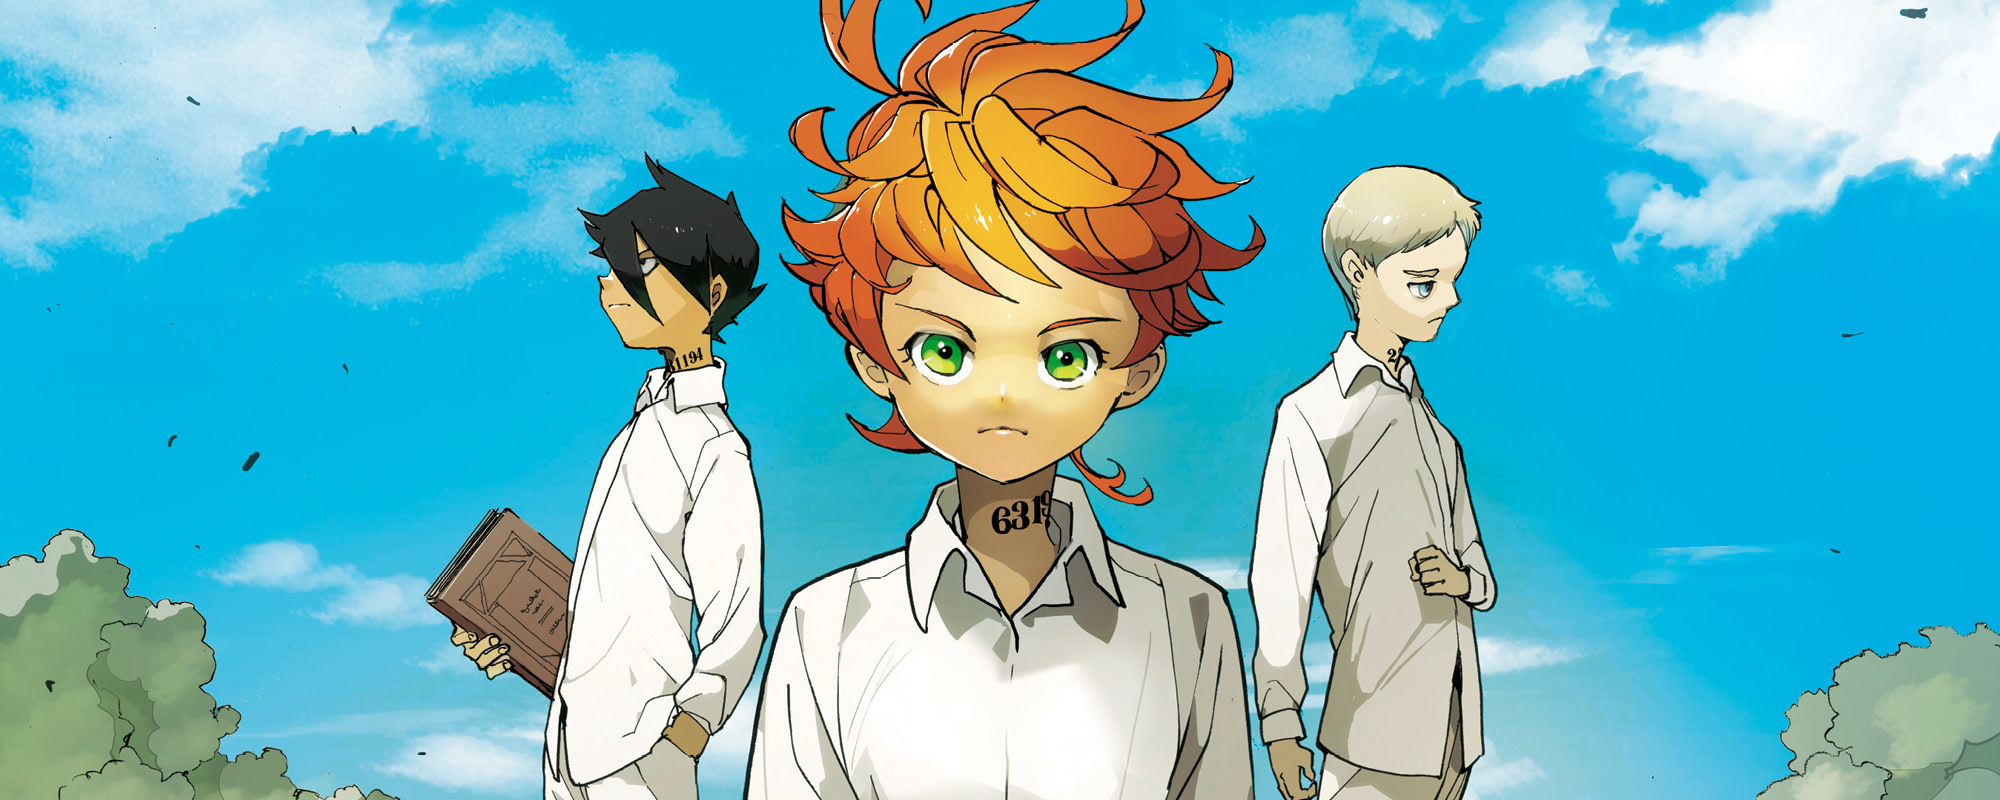 The Promised Neverland chapter 131 spoilers, release date